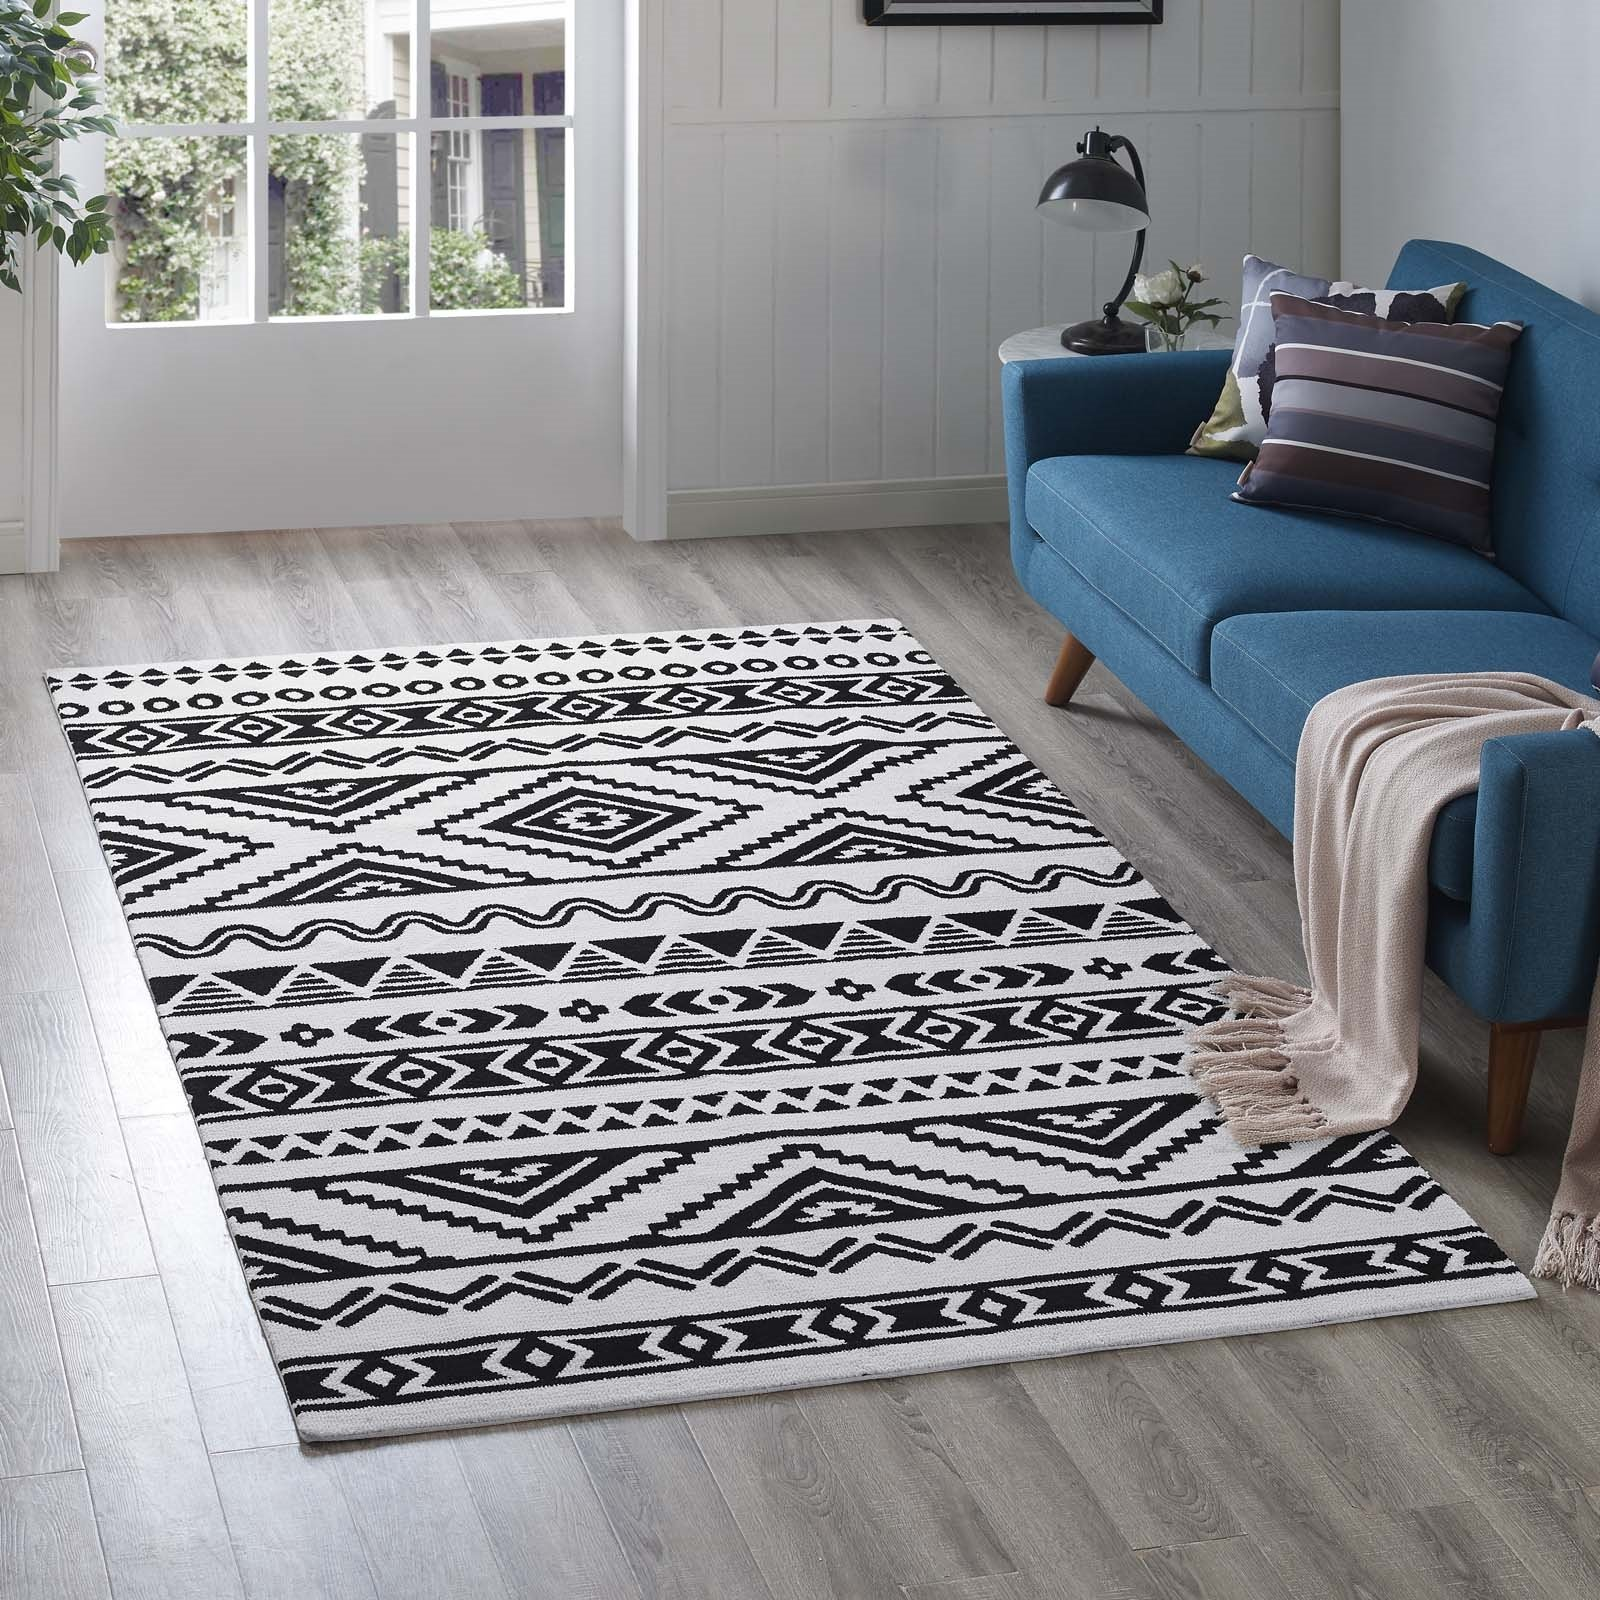 Haku Geometric Moroccan Tribal 5x8 Area Rug in Black and White Product Image